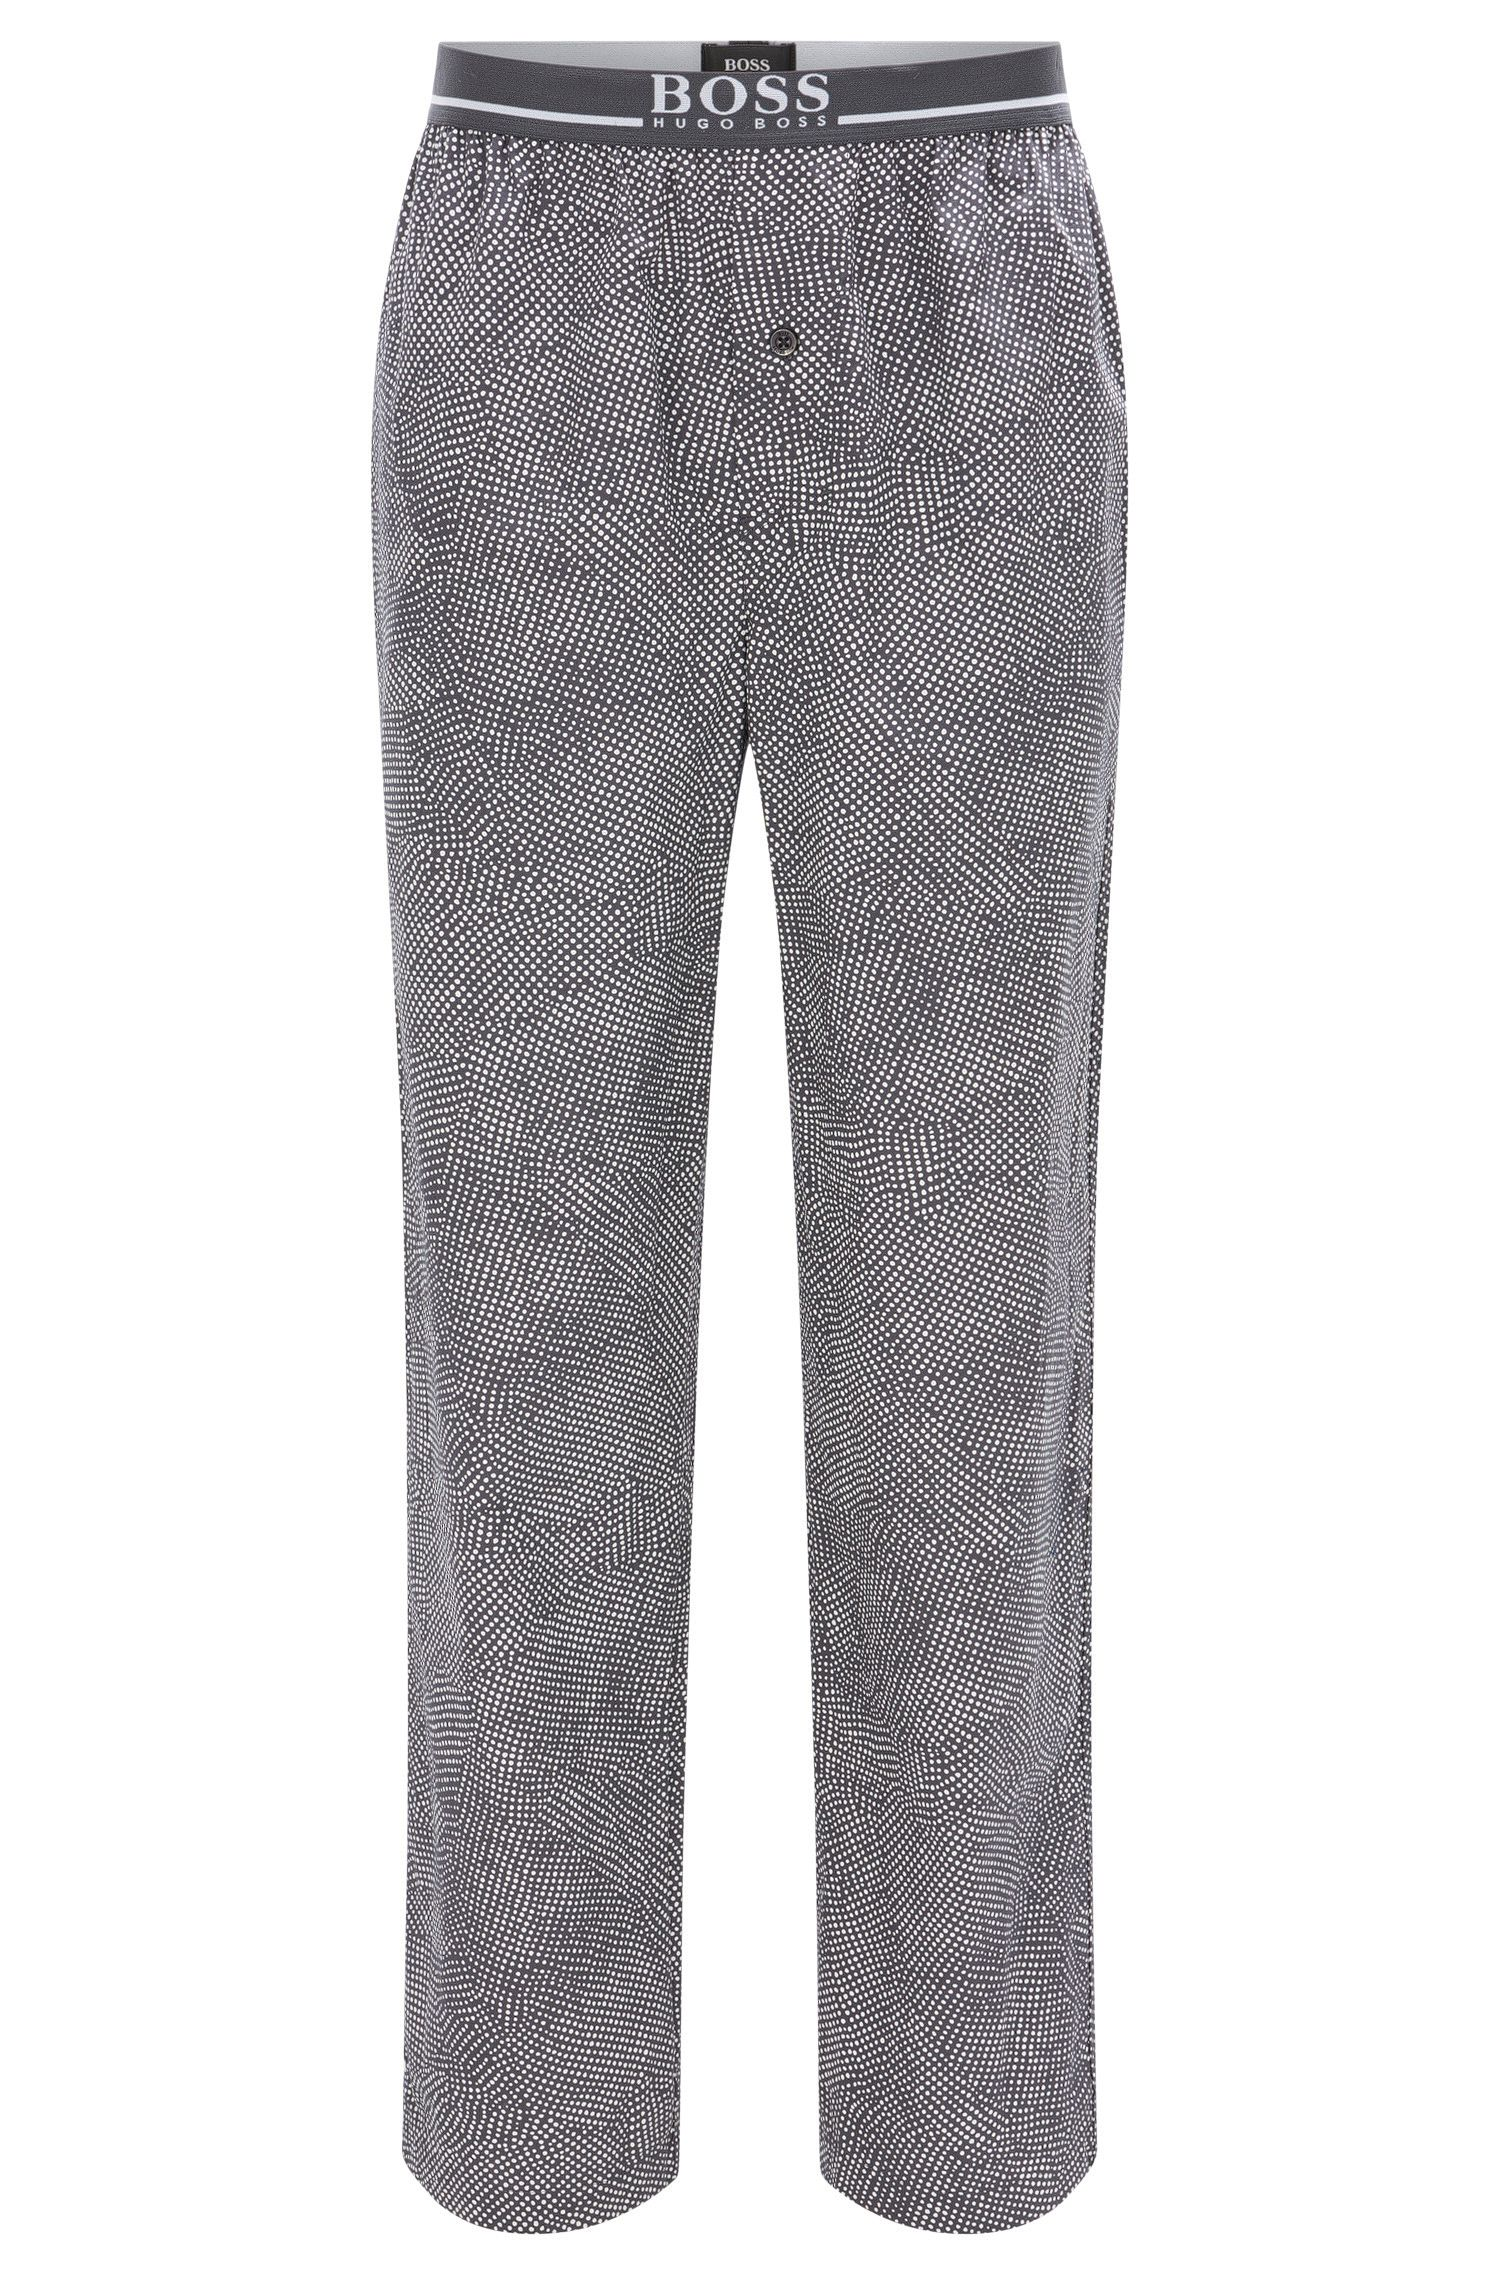 Pyjama bottoms in cotton with exposed waistband